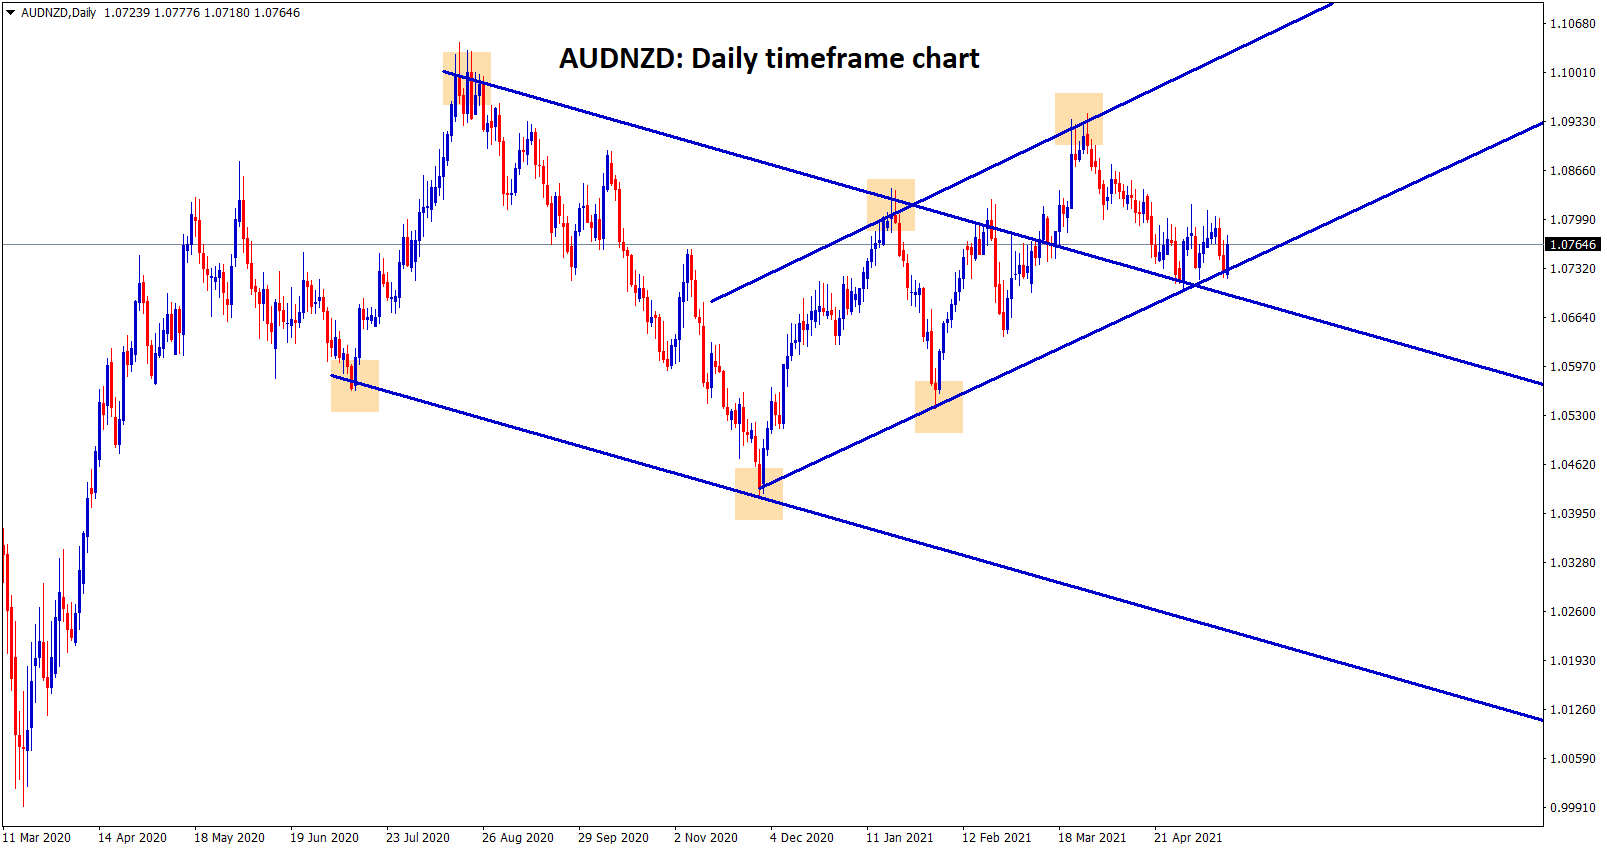 AUDNZD is moving between the channel ranges in the daily timeframe